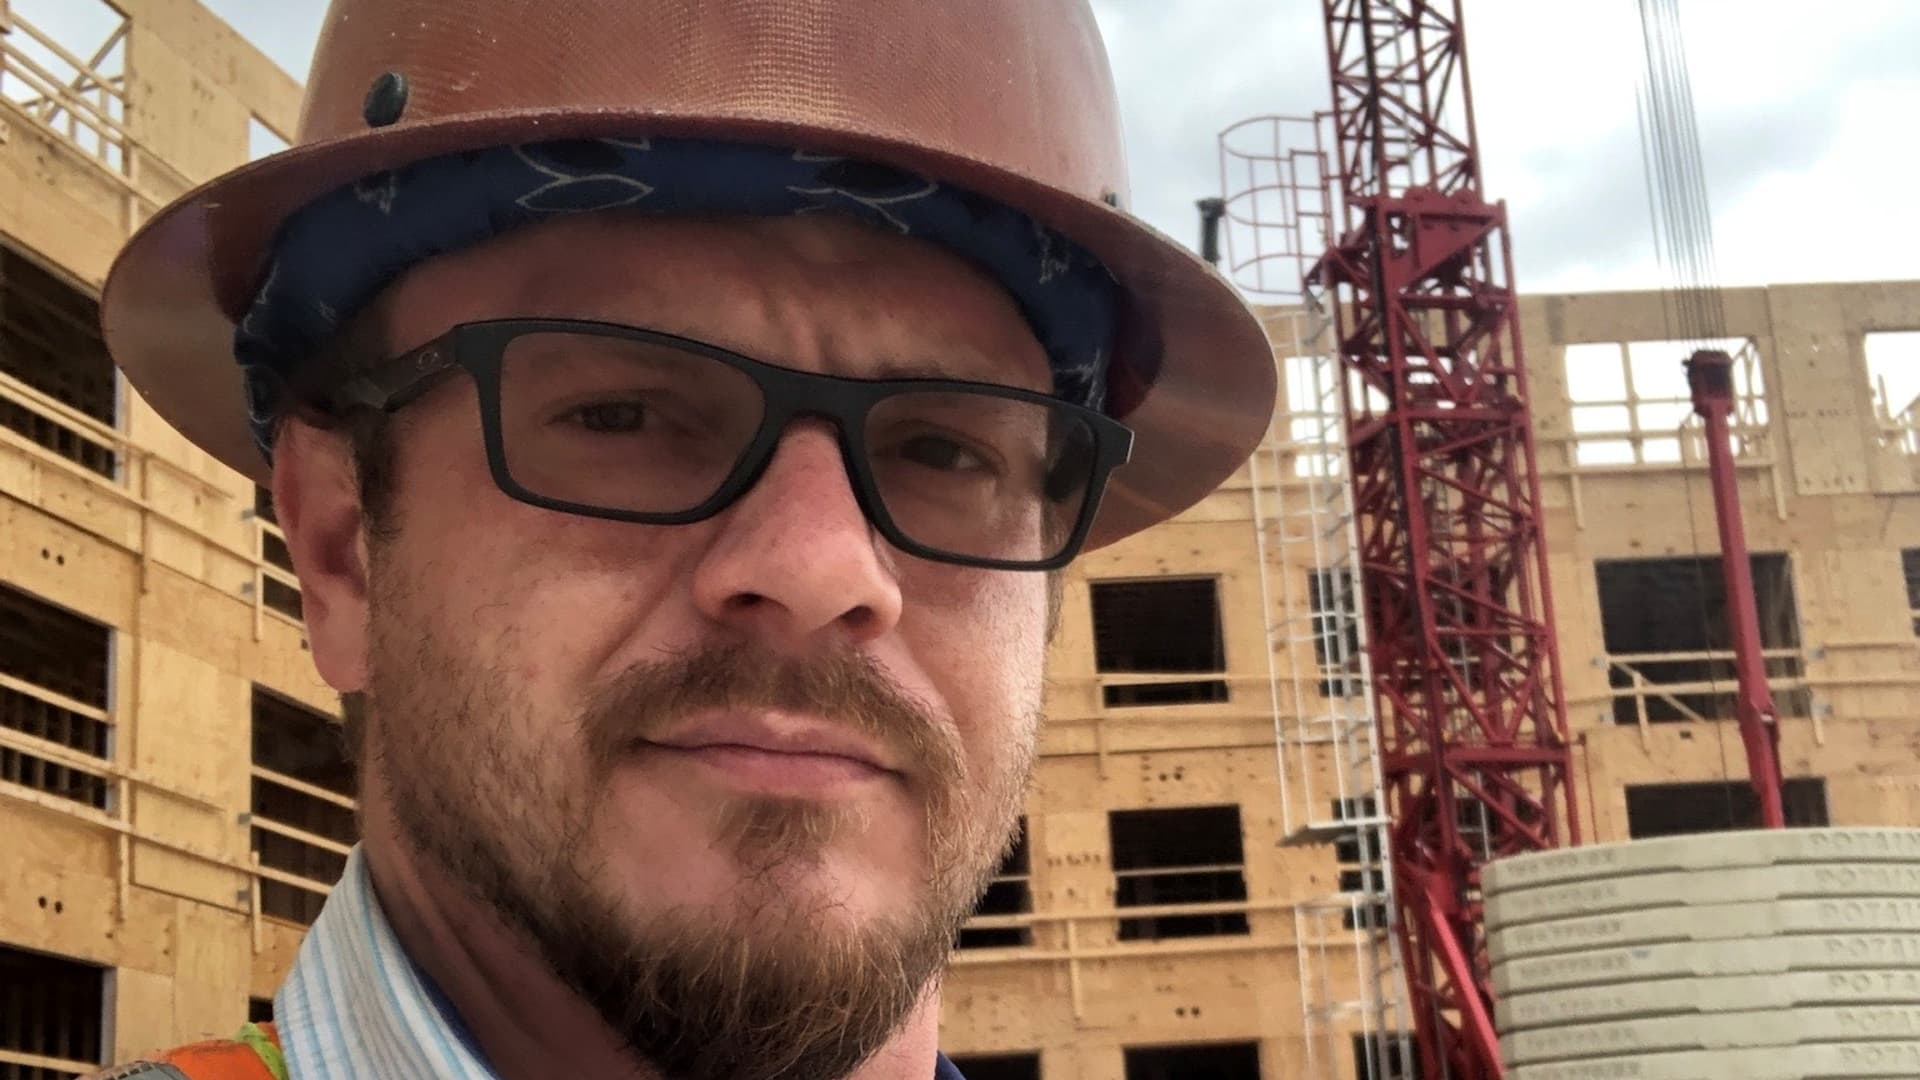 Mike Carpenter, 35, said the unemployment system has led to financial ruin. Carpenter, who'd worked for a luxury apartment builder, hasn't received months of jobless benefits he believes he's owed from Pennsylvania.